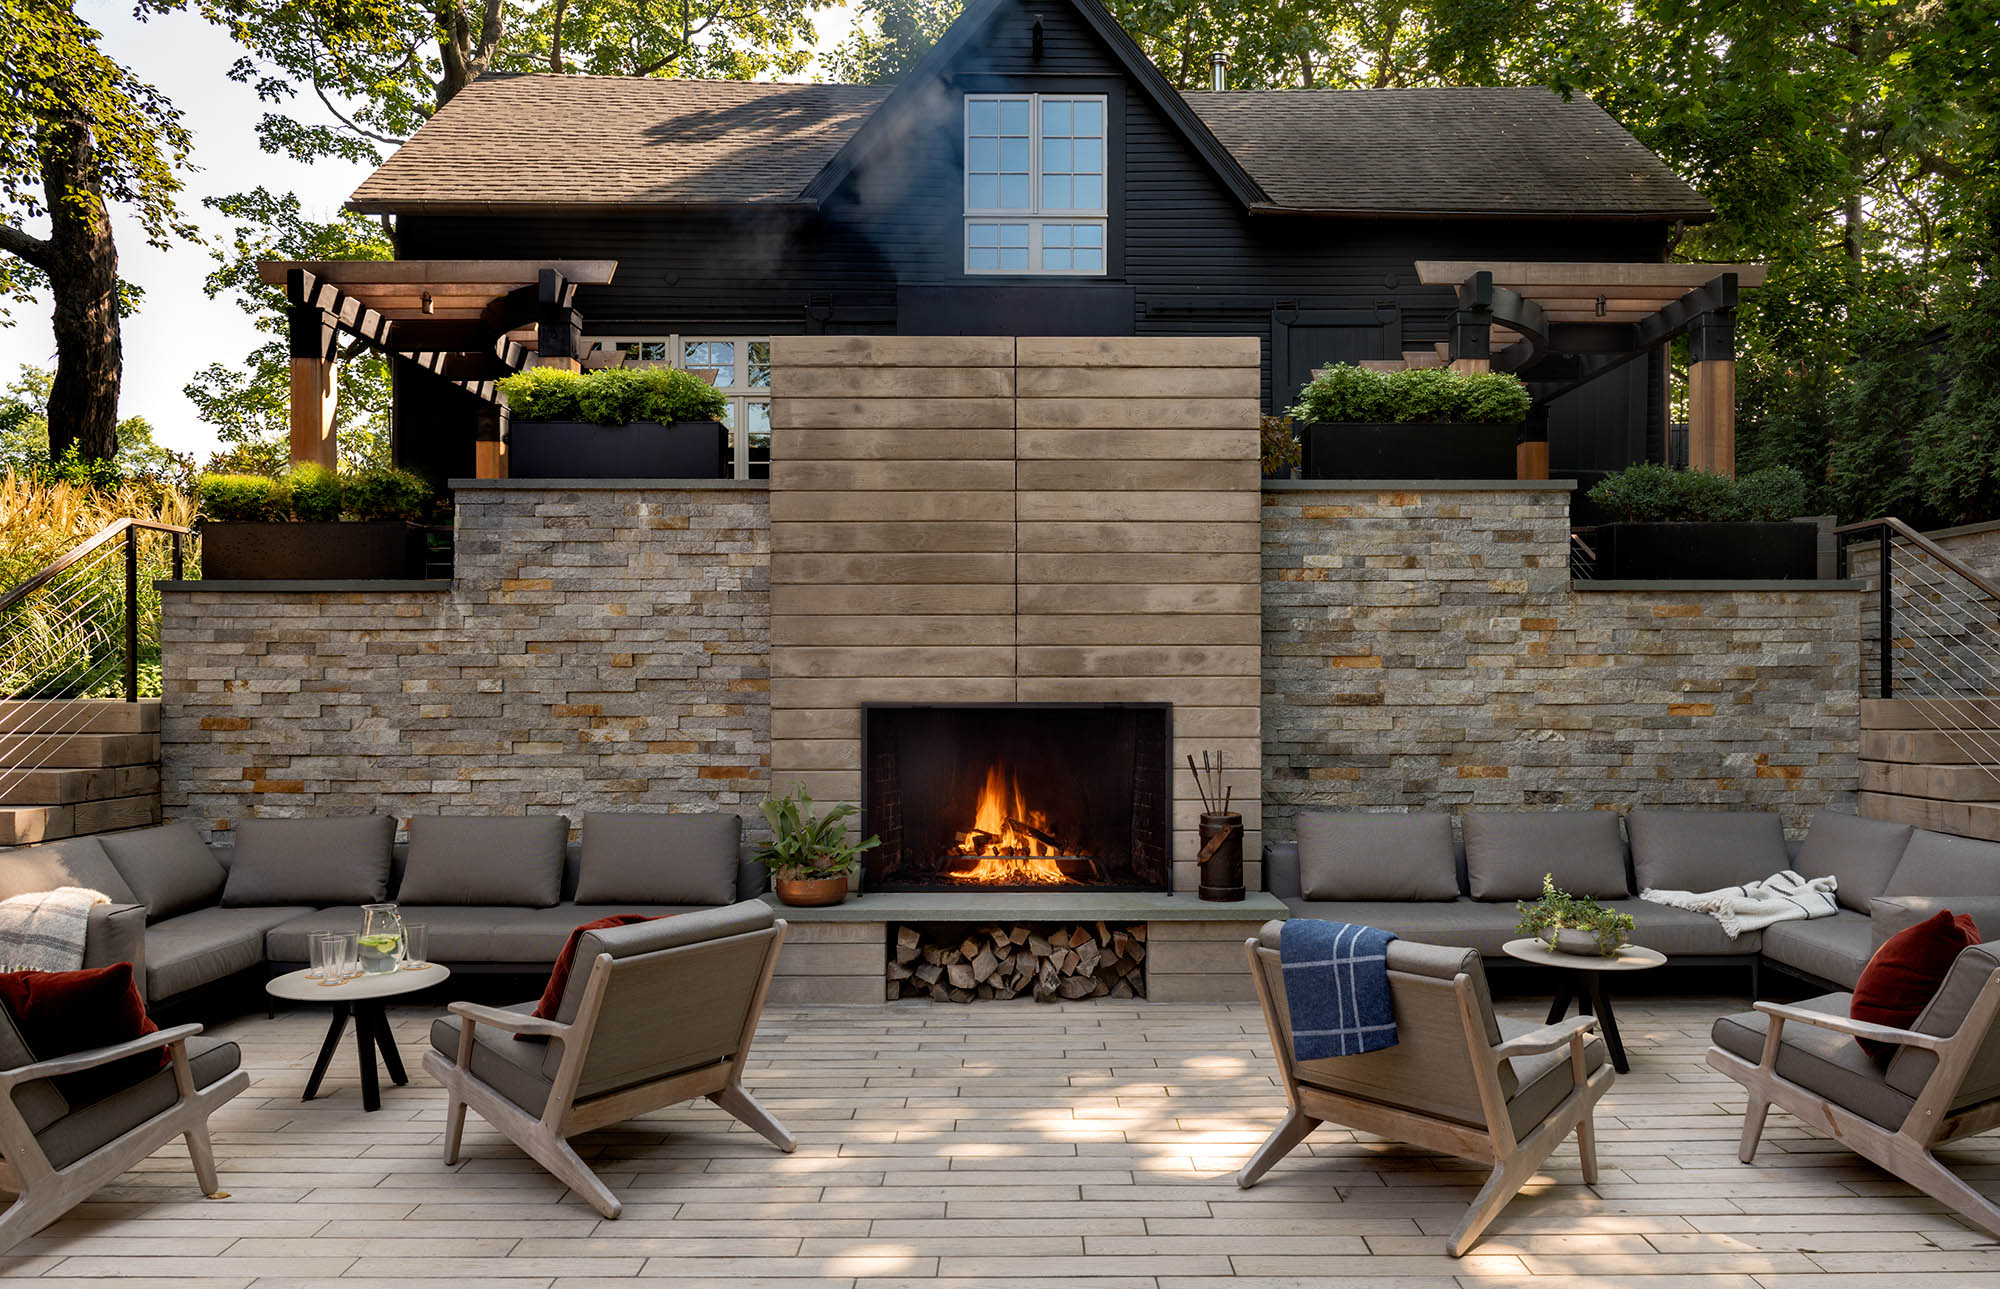 15 outdoor living spaces on the drawing board - Outdoor living spaces with fireplace ...